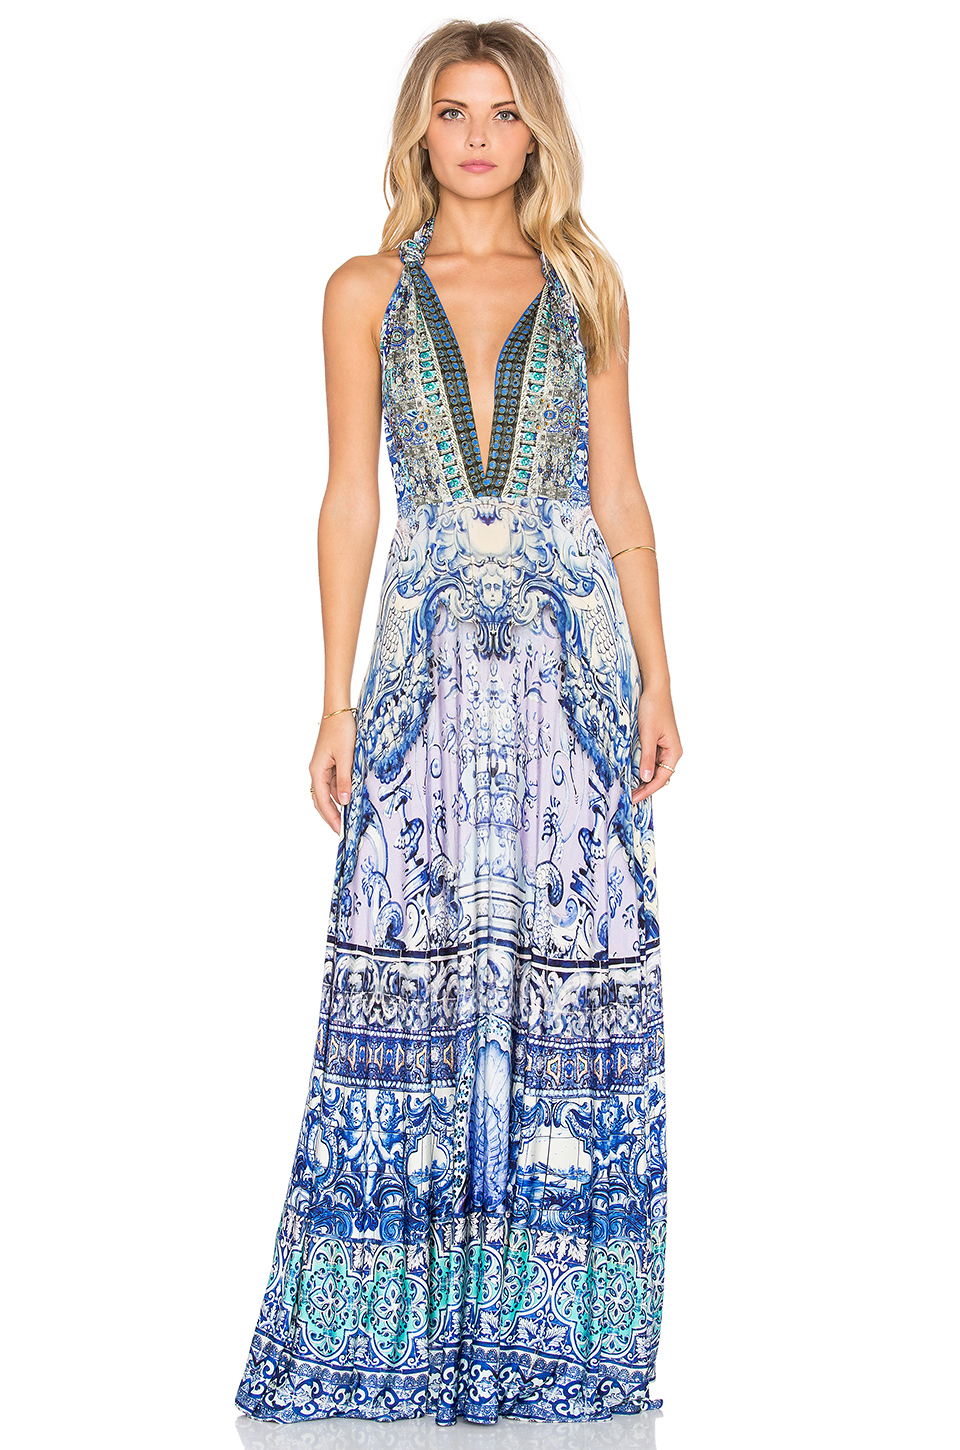 Camilla Concubine Realm Sheer Overlay Dress in Blue